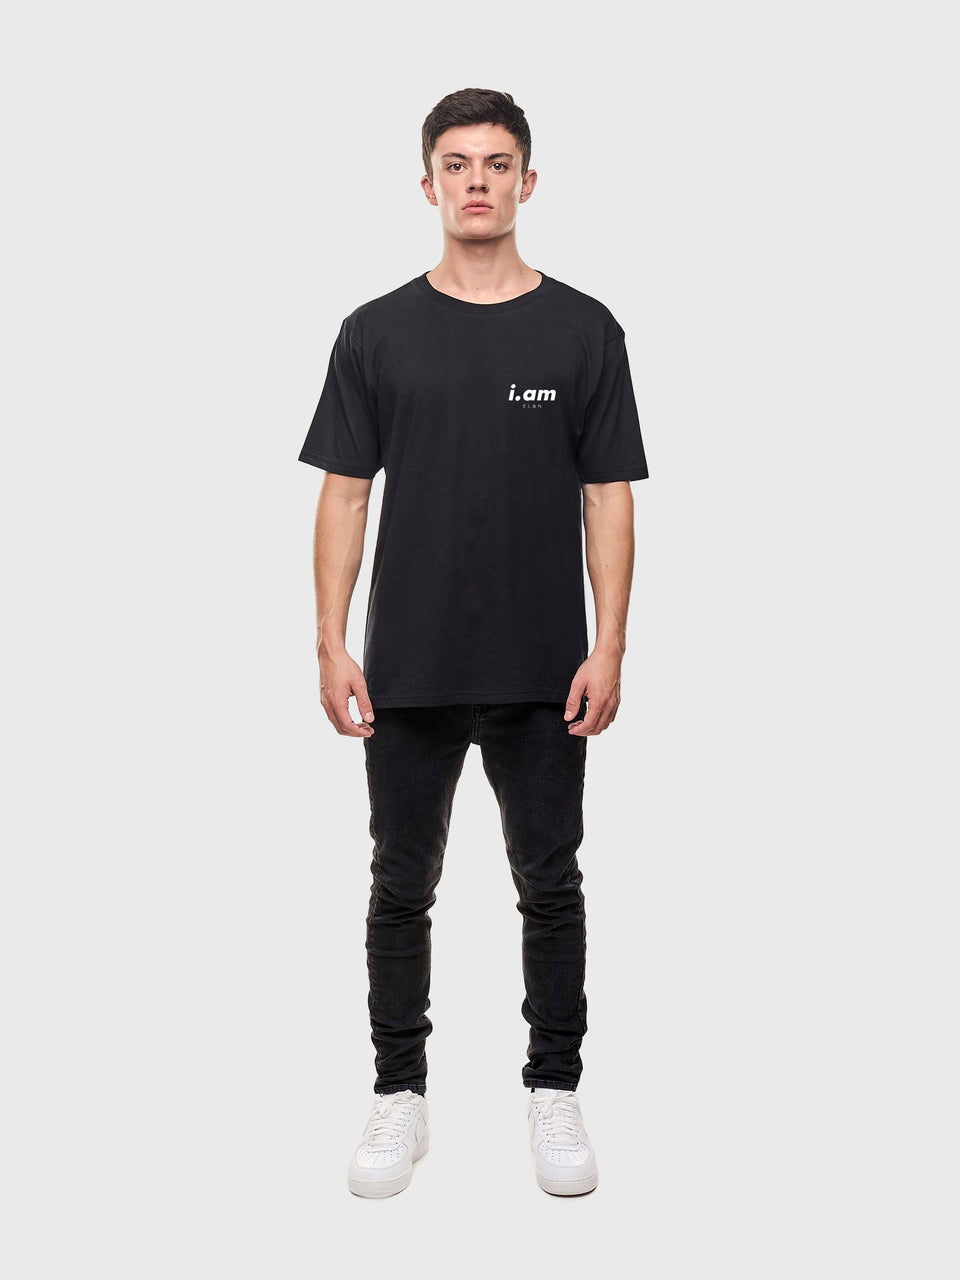 Made in London - Black - Unisex T